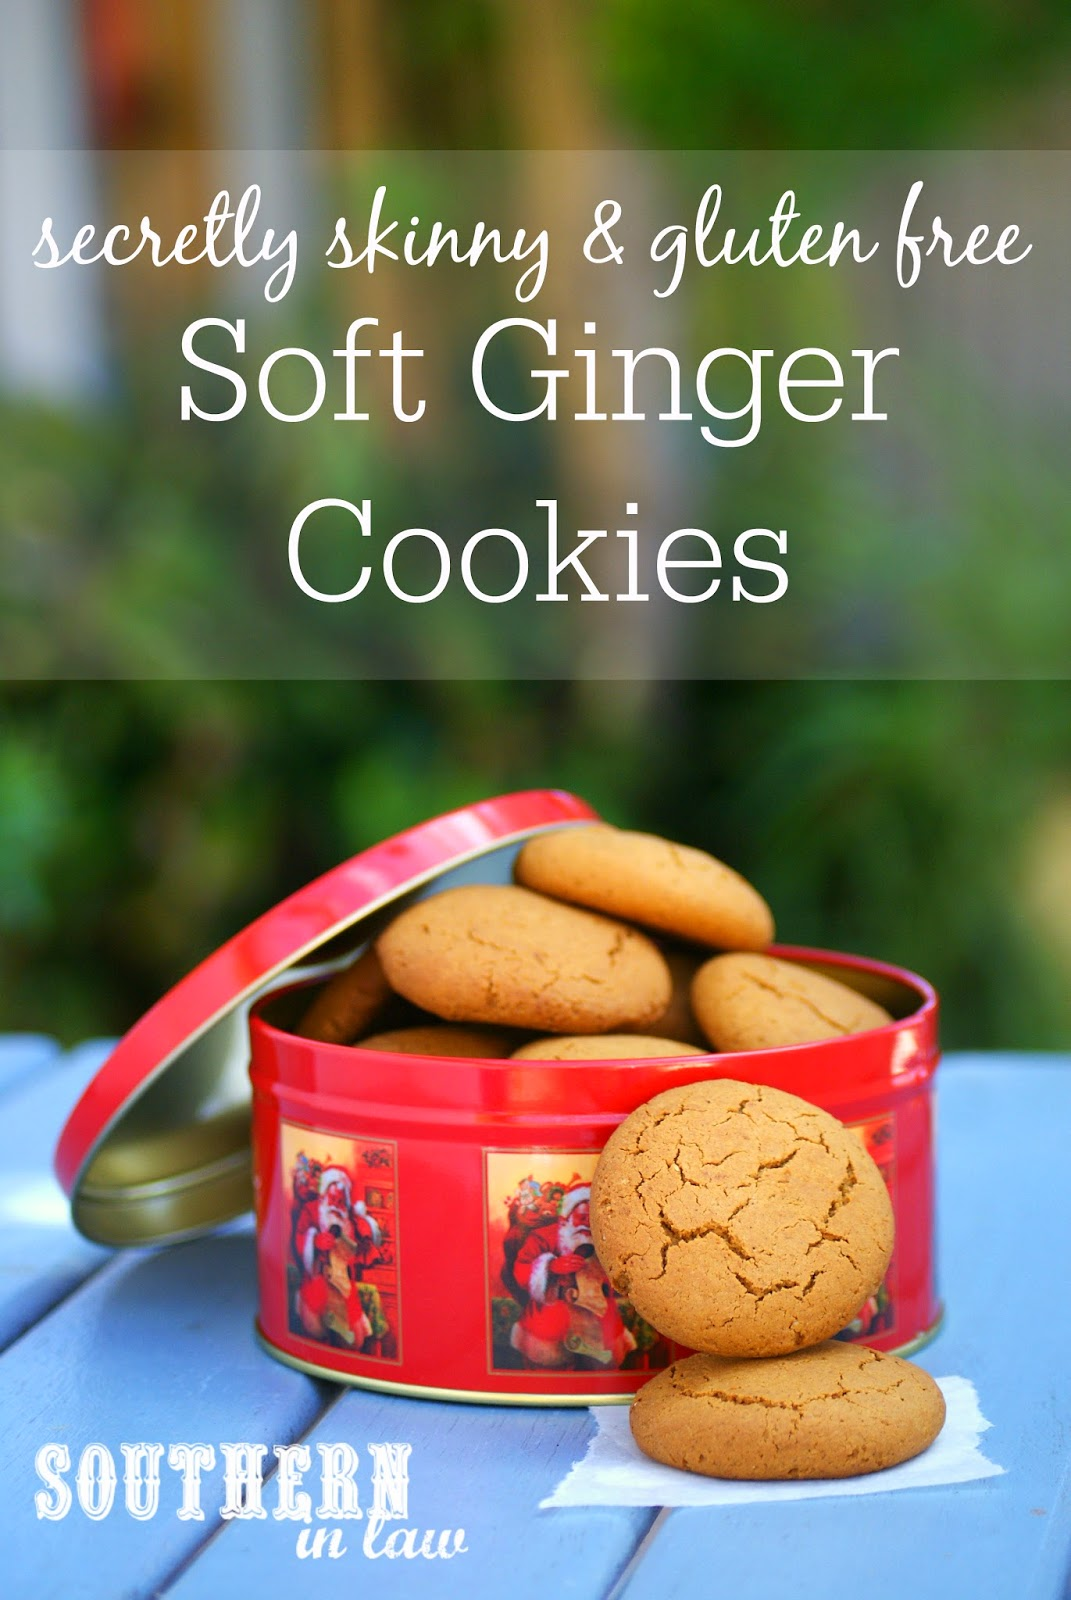 Secretly Skinny Ginger Cookies Recipe - Healthy Christmas Cookie Recipes, Healthy, Low Fat, Gluten Free, Low Sugar, Skinny Recipes, Gingernut Biscuits, Ginger Biscuits, Home made